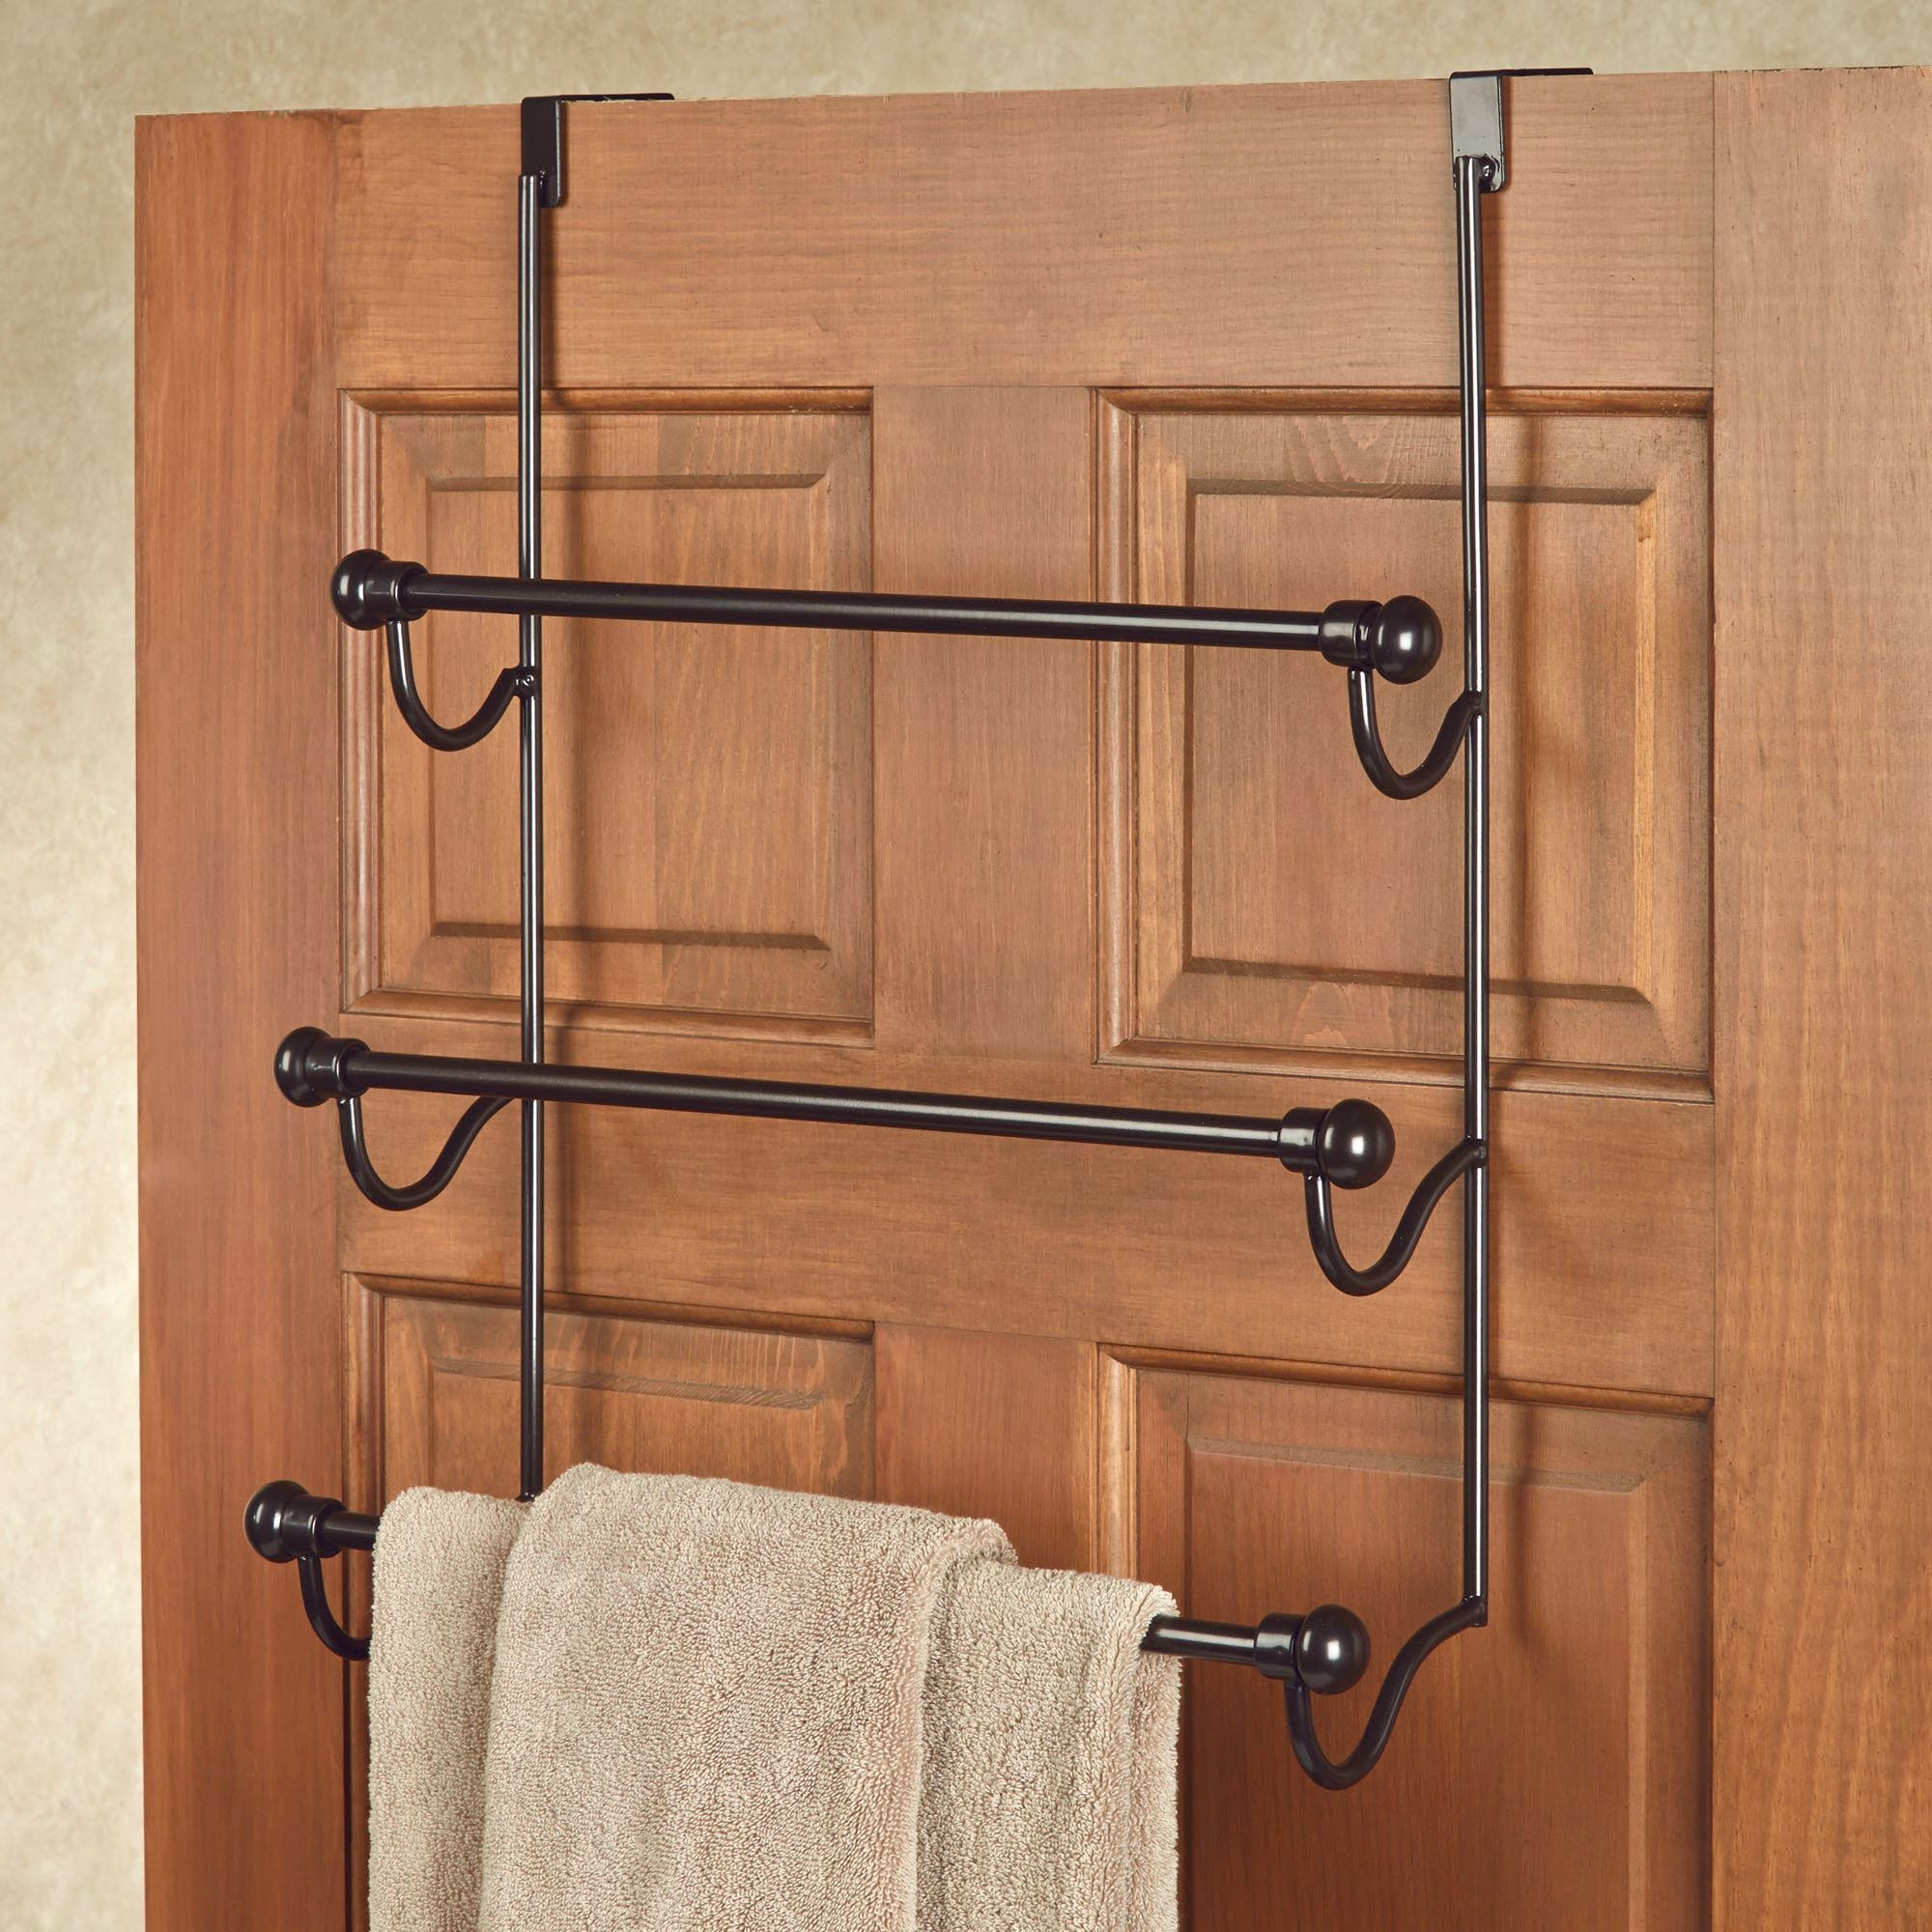 Over The Door Towel Rack For Bathroom